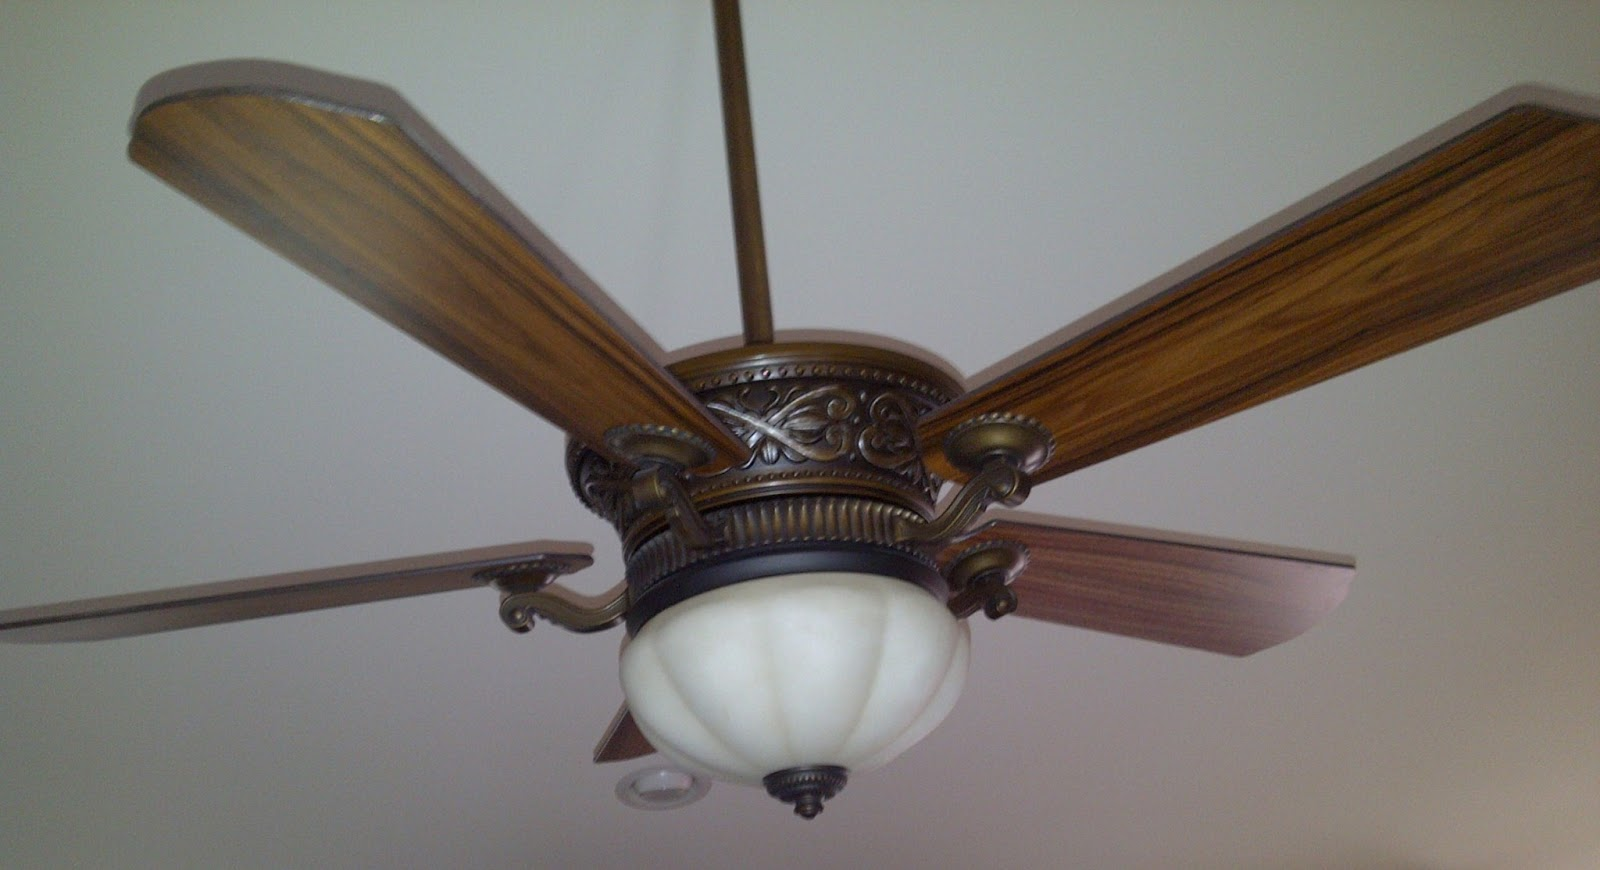 harbor breeze wakefield ceiling fan with uplight and remote control image source dr penny pincher [ 1600 x 870 Pixel ]